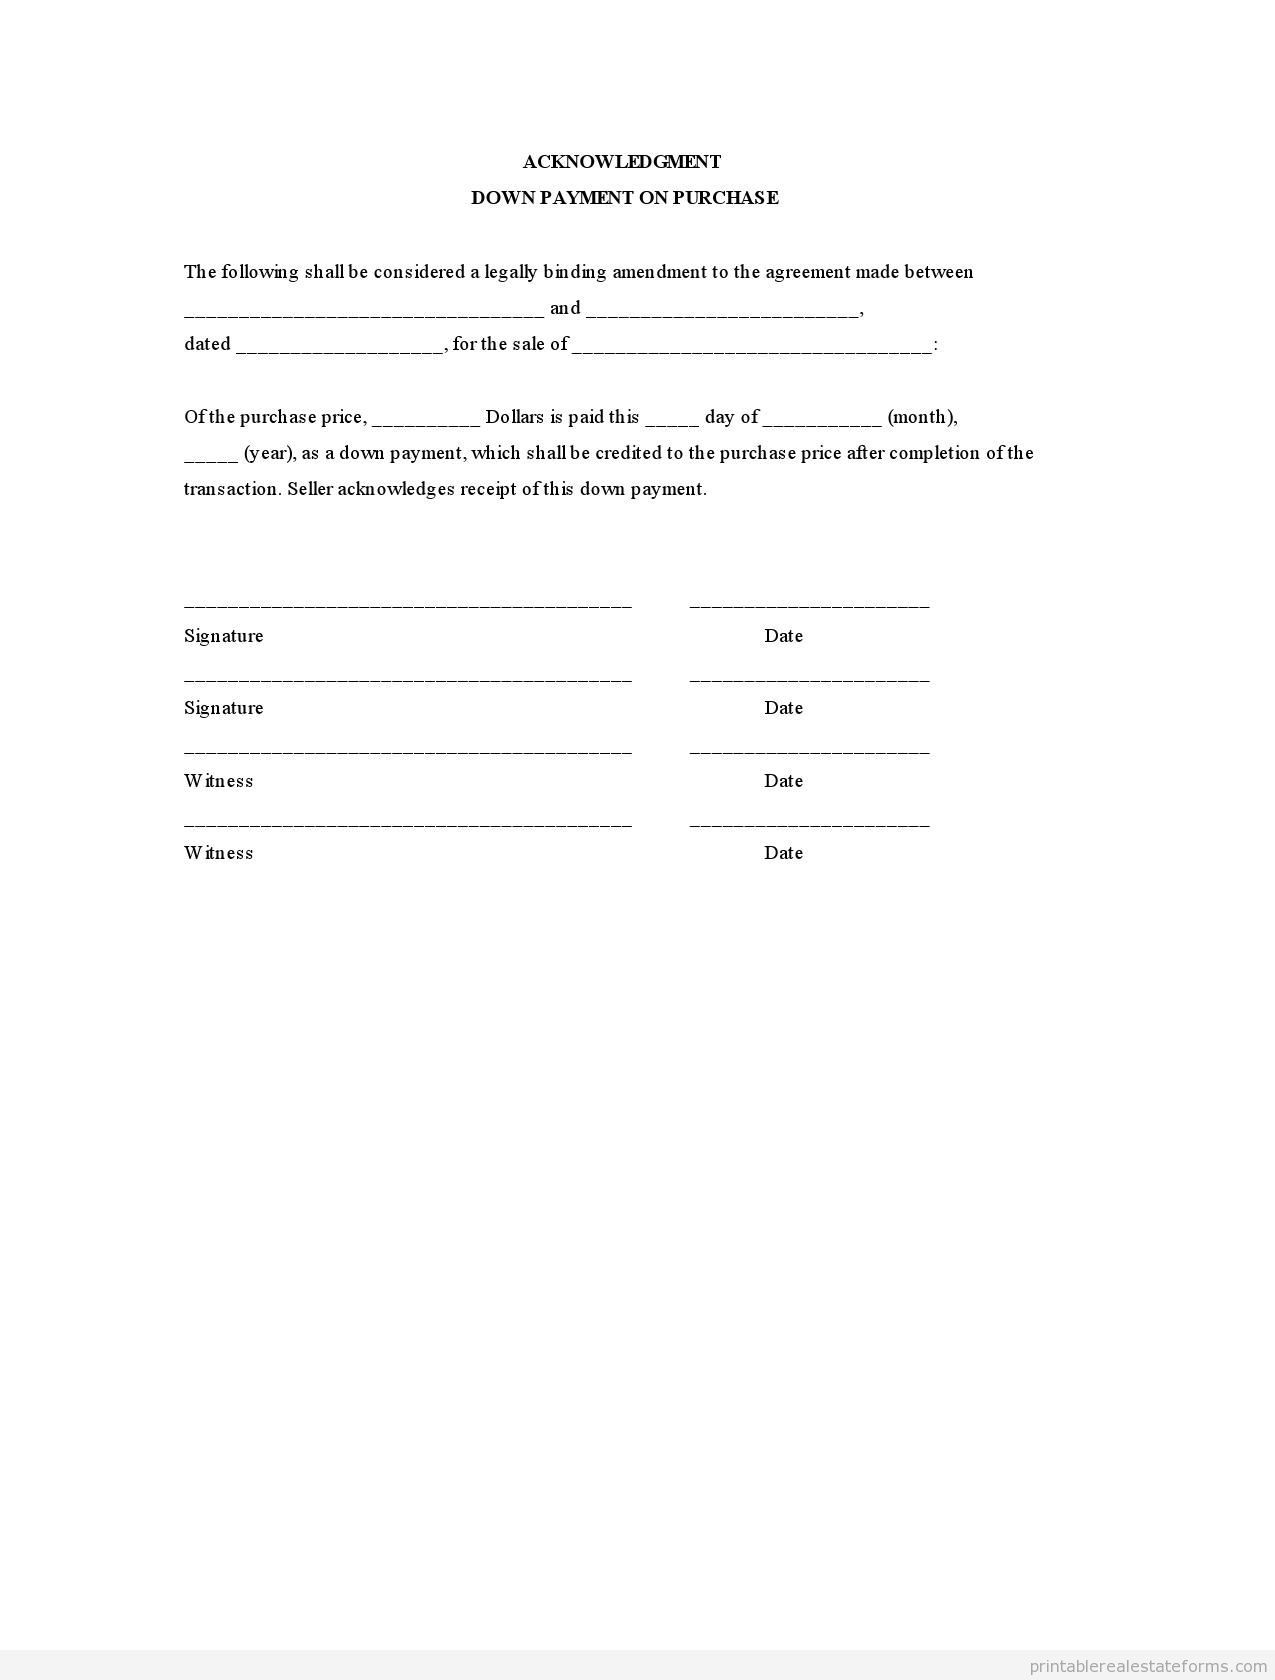 down payment receipt Sample Printable acknowledgment down payment on purchase Form ...